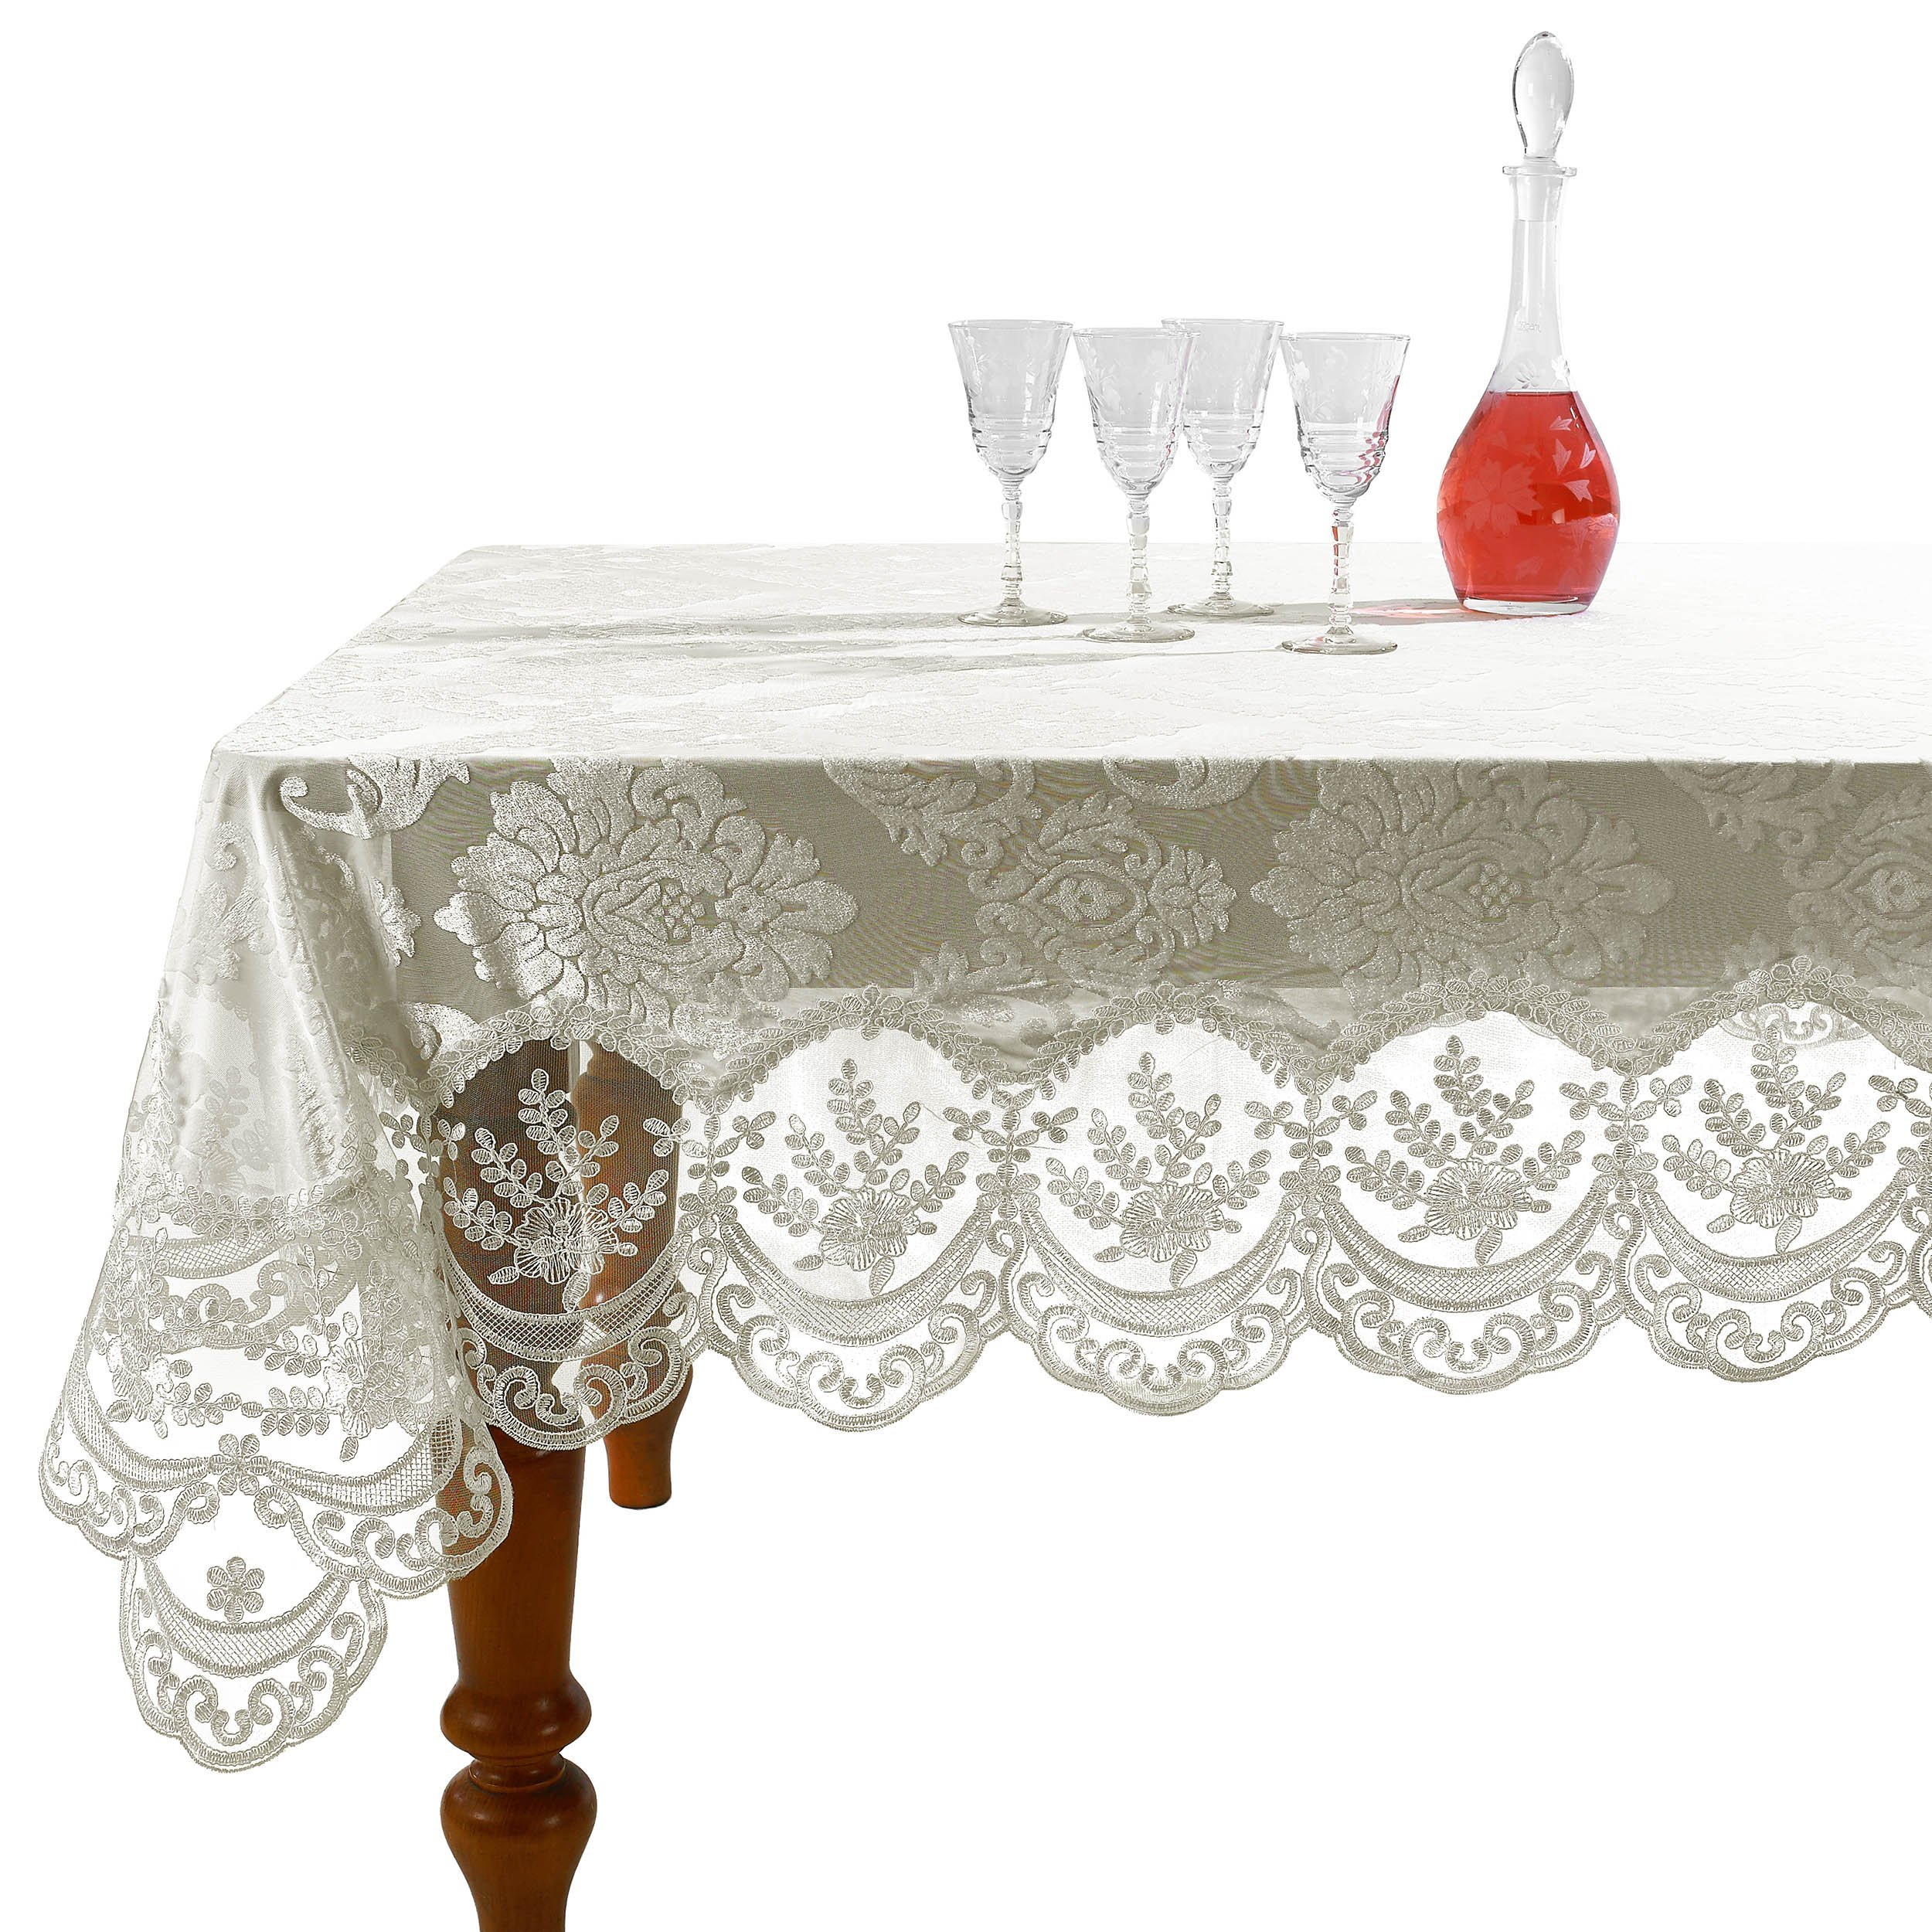 Violet Linen Fountainbleau Embroidered Lace Tablecloth, Floral Velvet Design - Ivory - 70'' x 144''